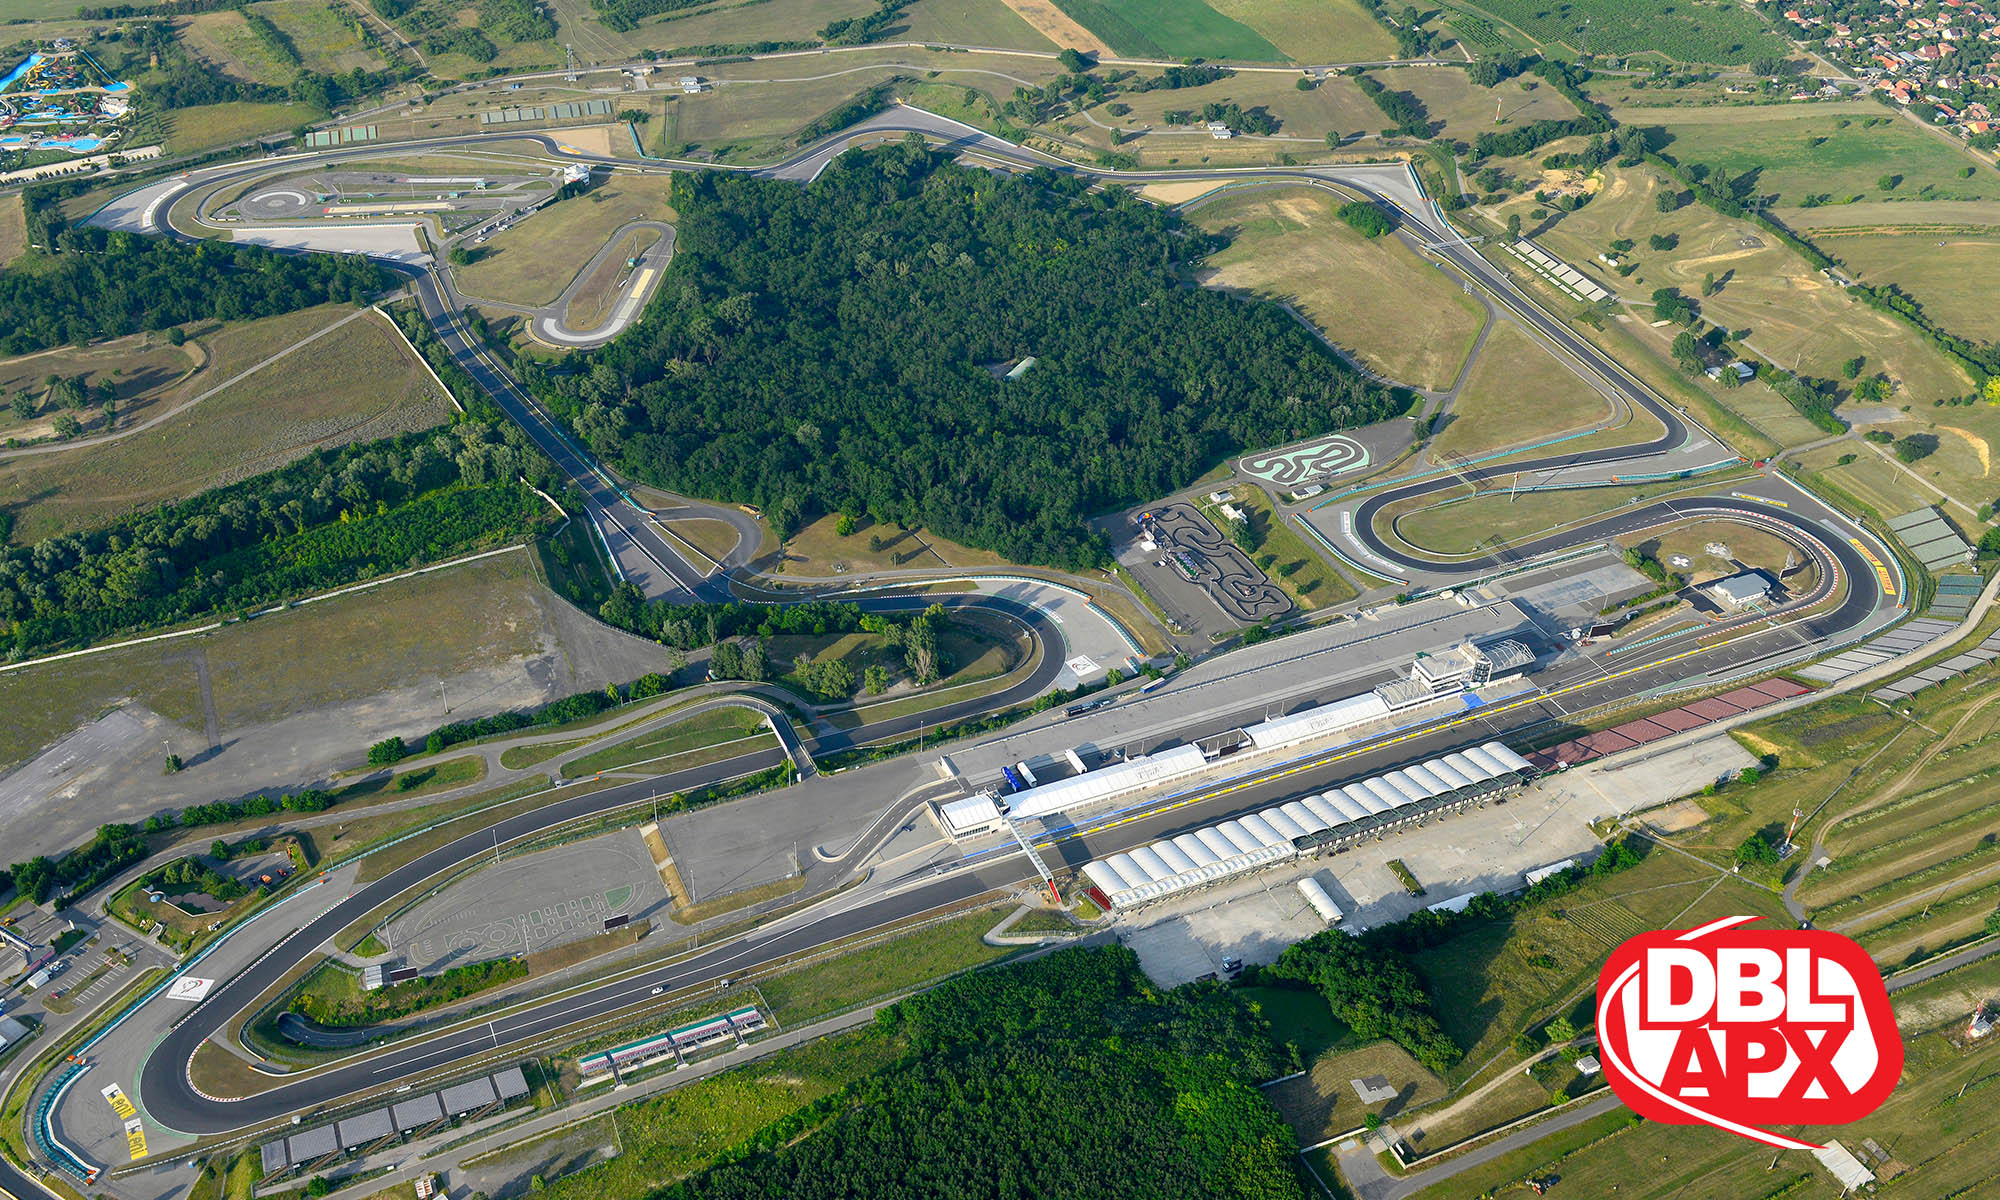 Hungary F1 Grand Prix preview